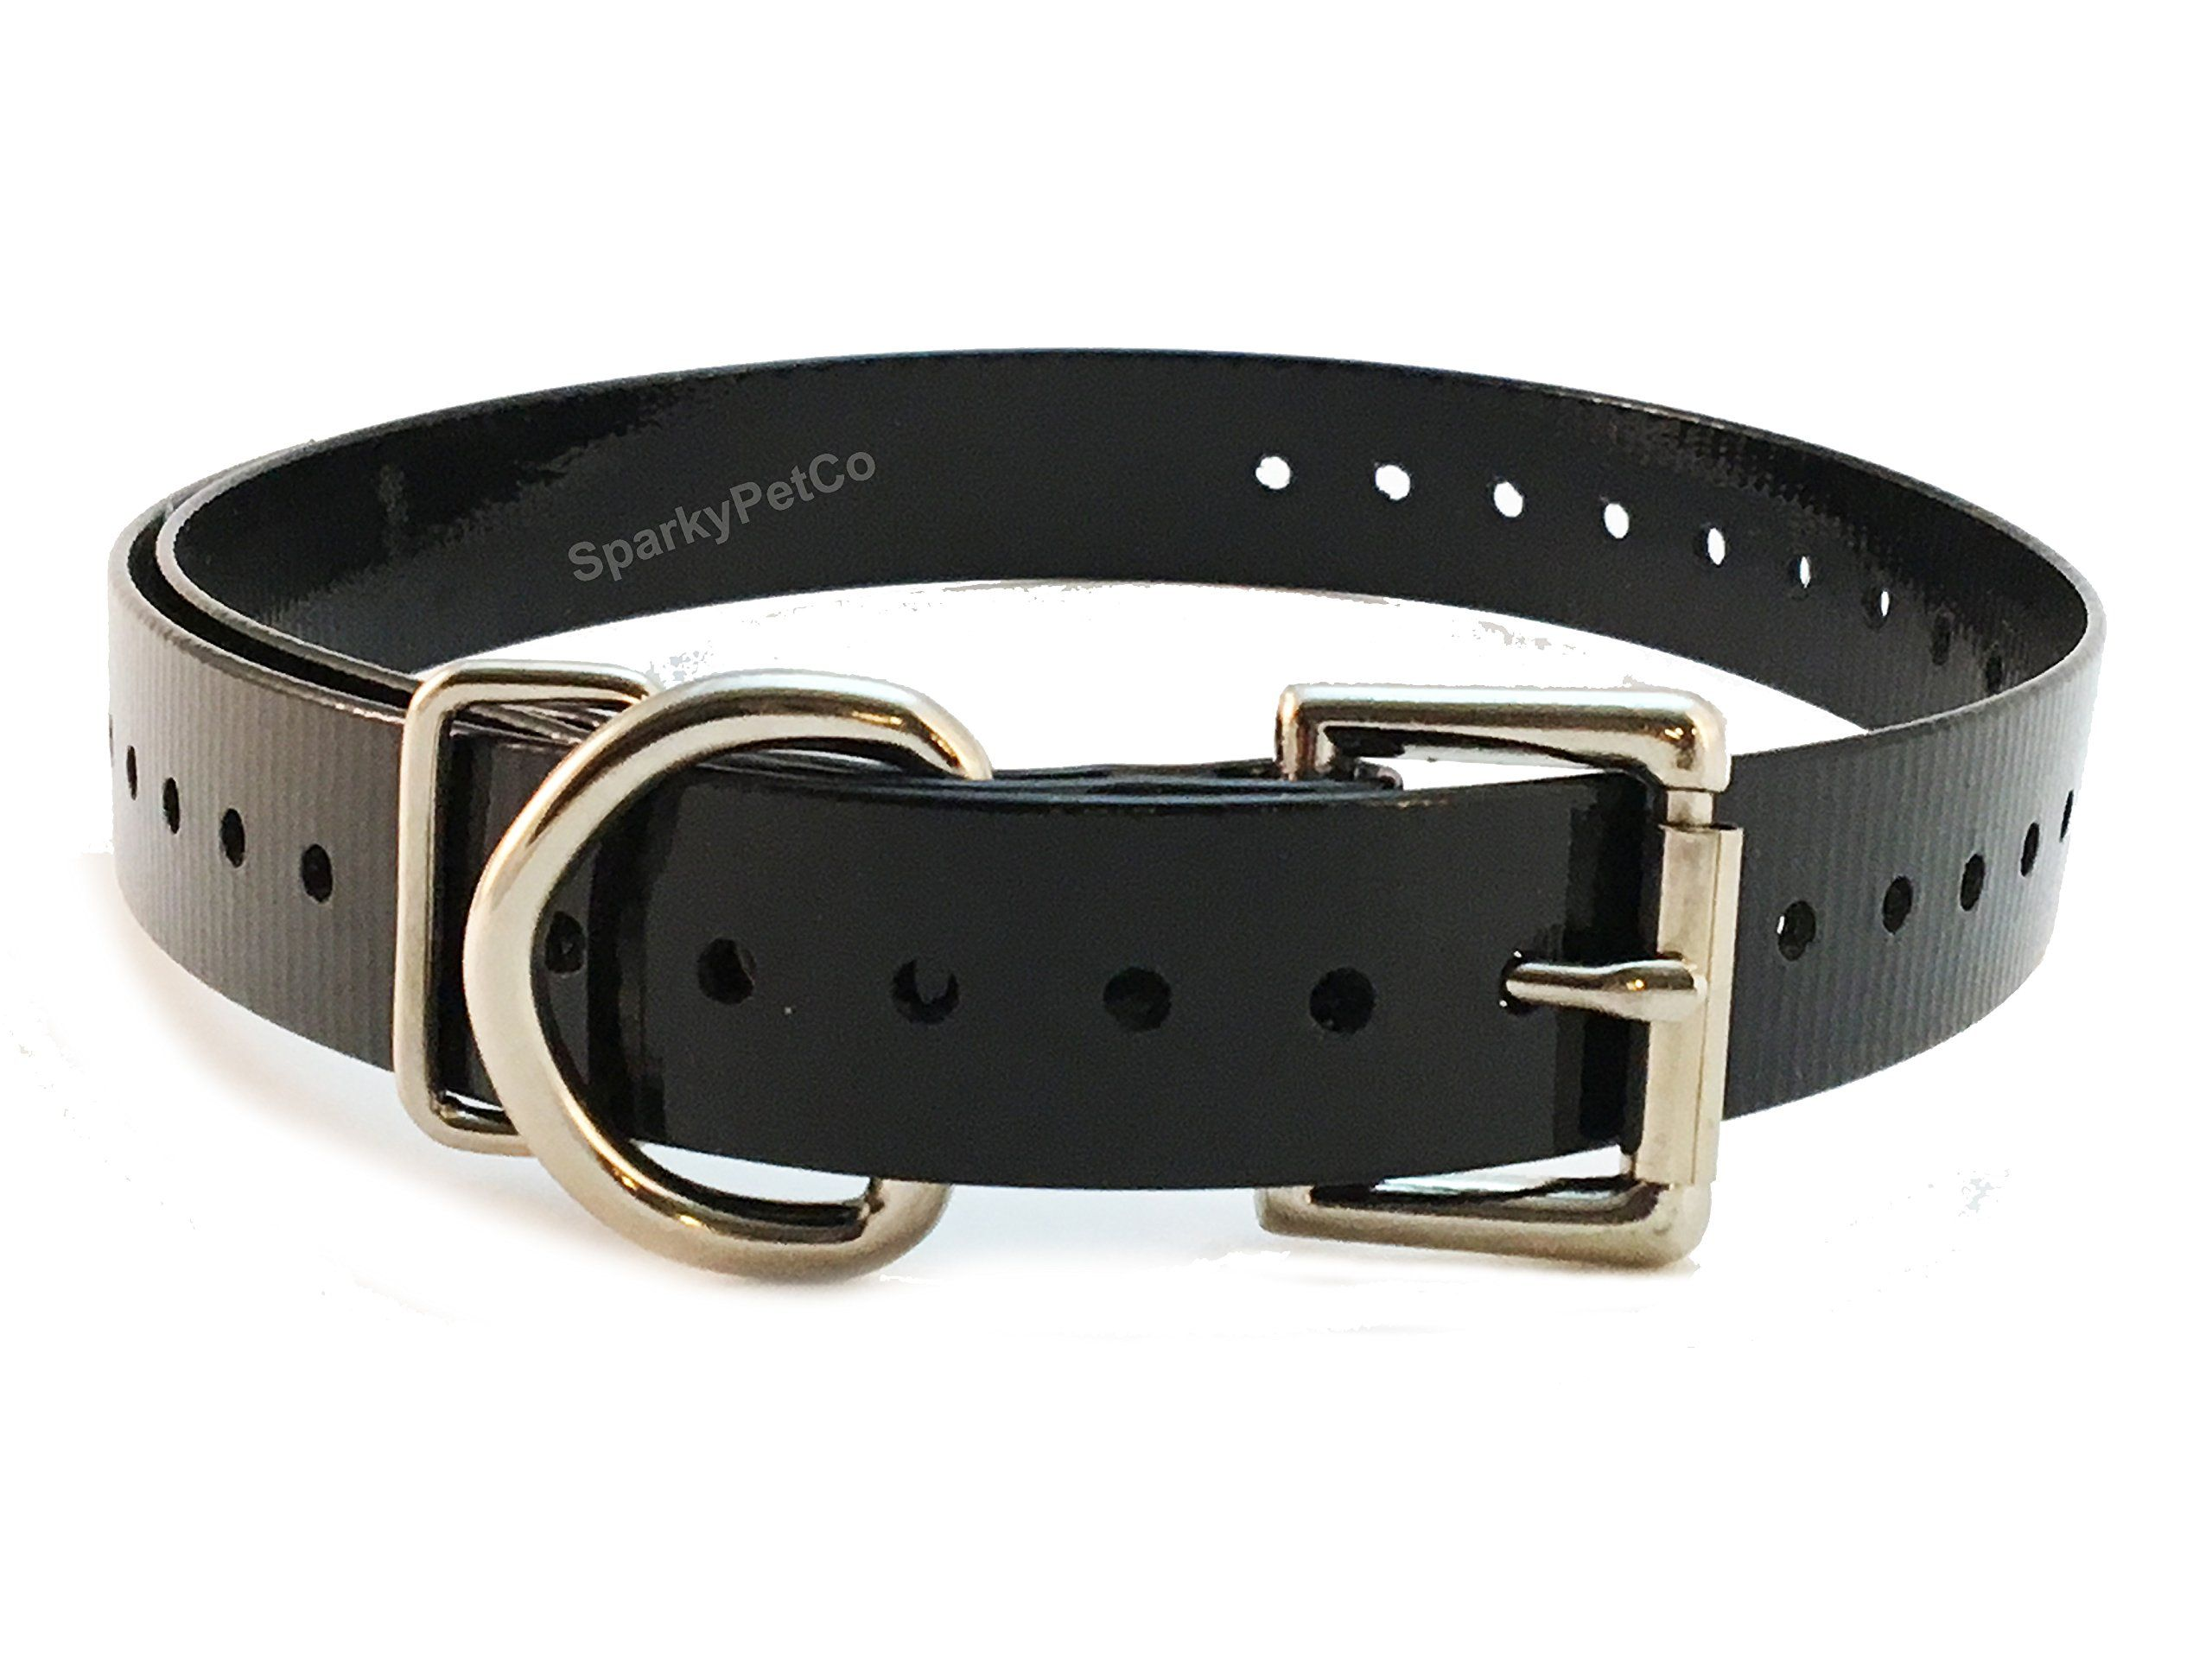 Sportdog 3 4 High Flex Waterproof Roller Buckle Dog Strap Black